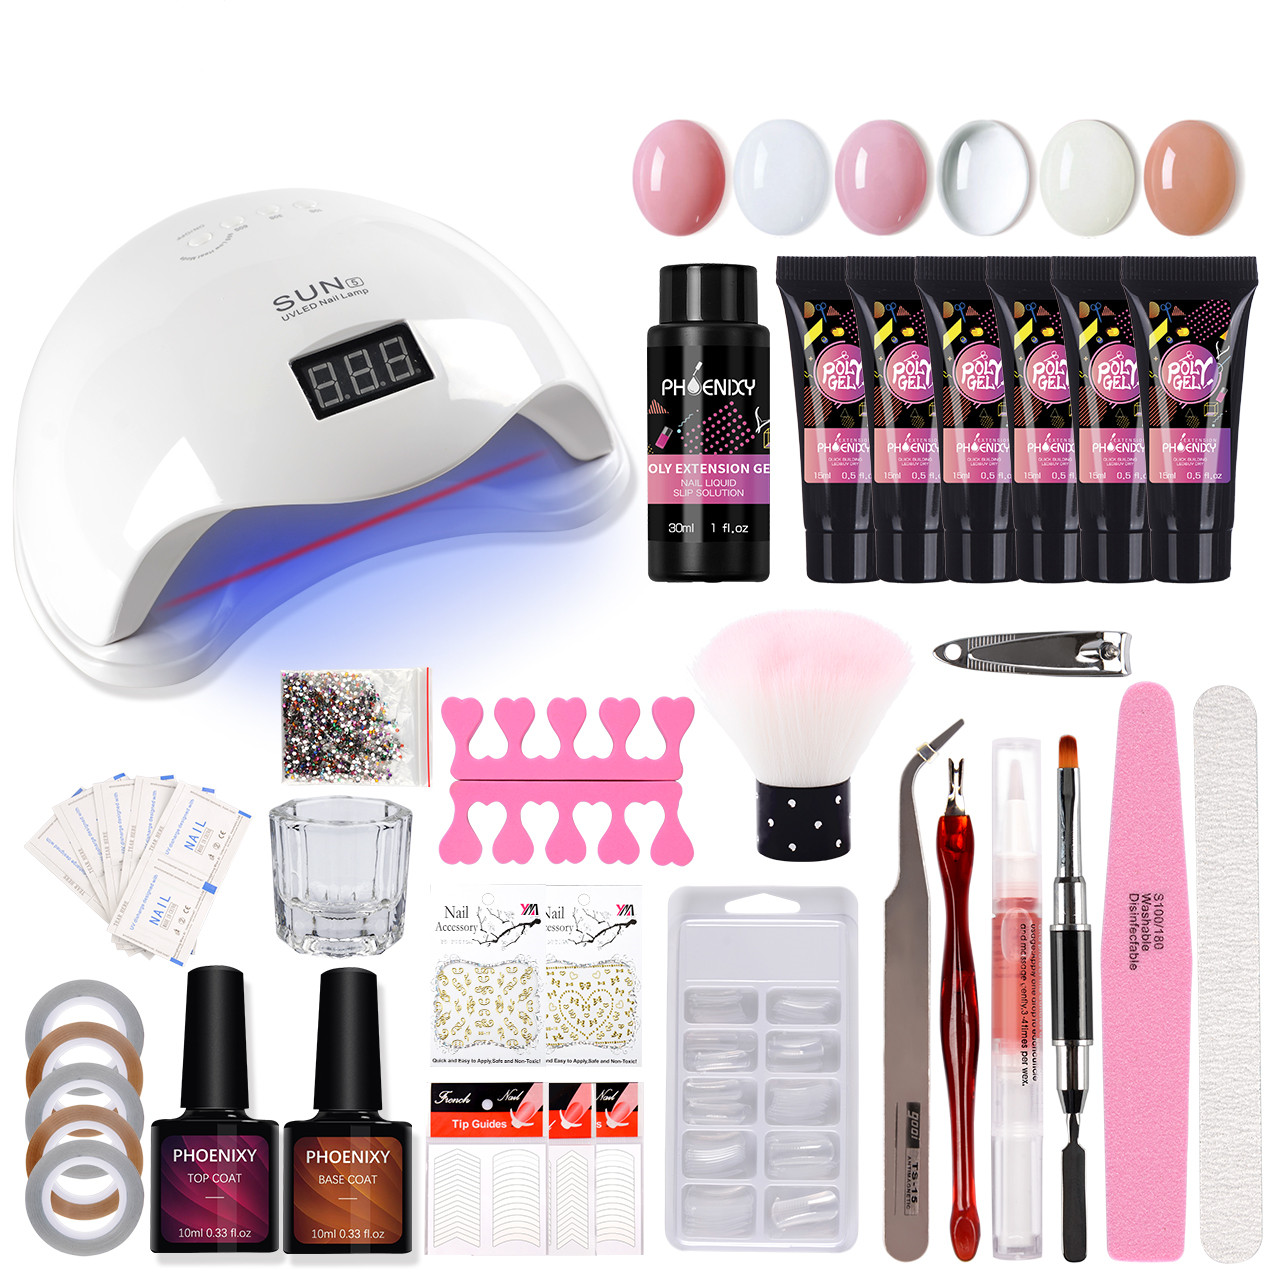 Polygel Nail Kit 48W UV Lamp Full Quickly Extension Gel Poly Gel Nail Brush Complete Nail Drill Manicure Acrylic Nail